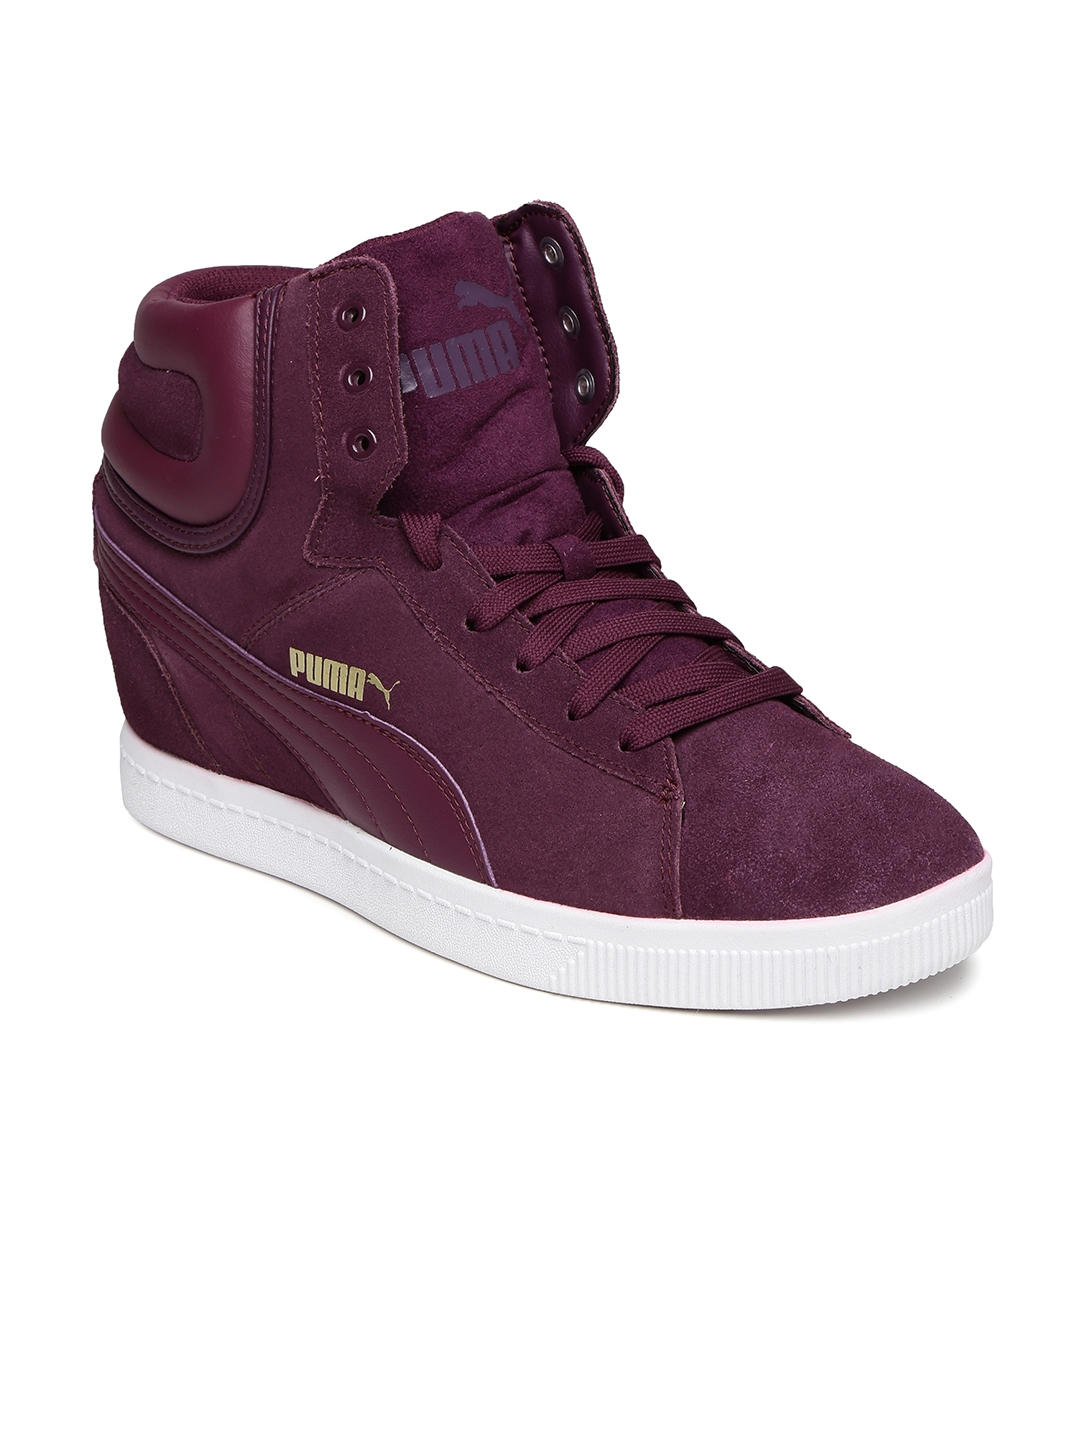 38c5460b38e5 Buy Puma Women Purple Vikky Wedge Suede Sneakers - Casual Shoes for ...